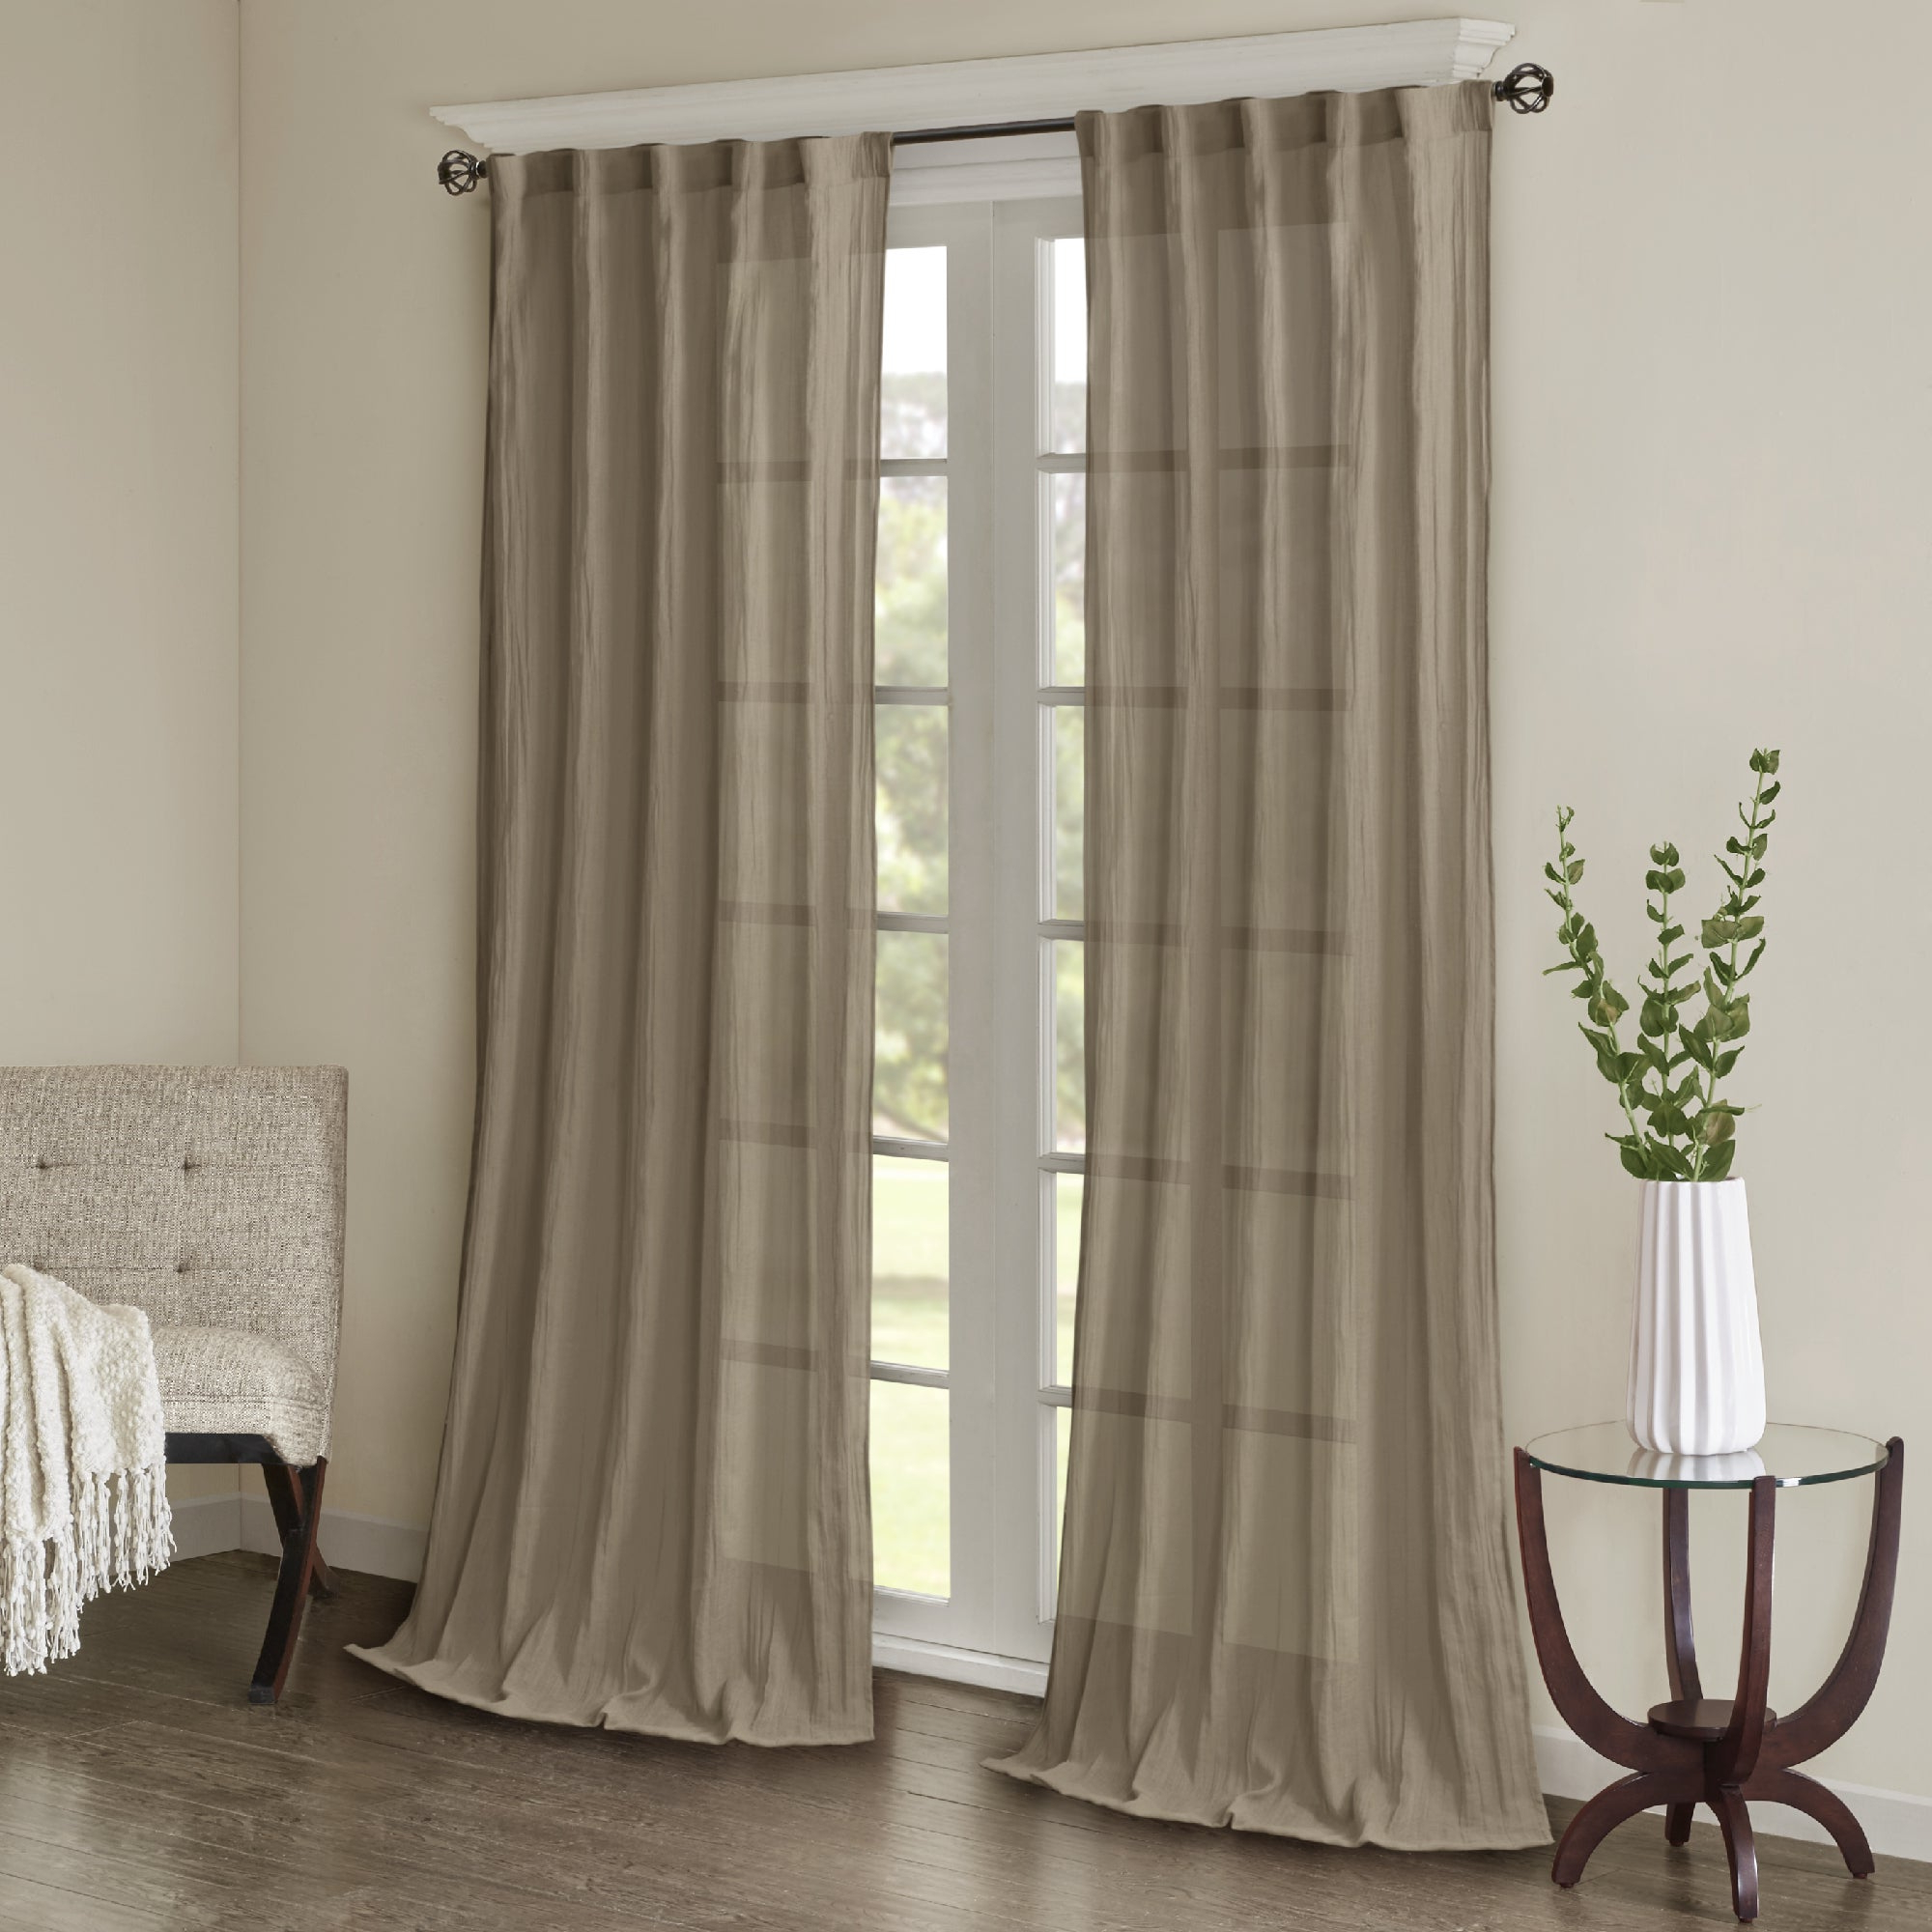 2020 Madison Park Kaylee Solid Crushed Sheer Window Curtain Pair With Kaylee Solid Crushed Sheer Window Curtain Pairs (View 3 of 20)